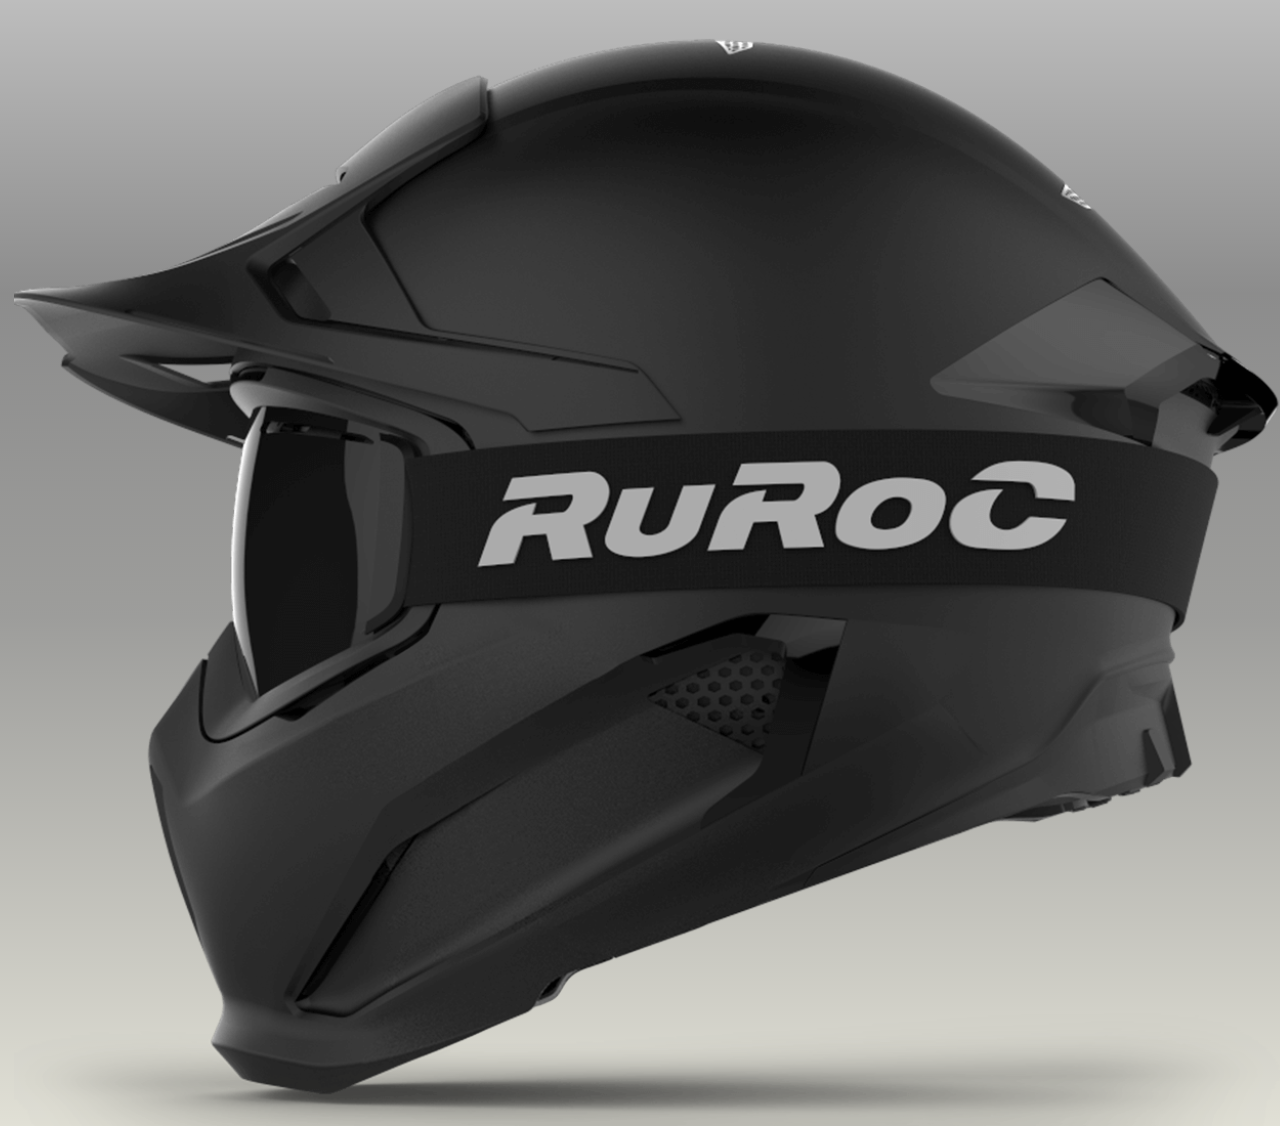 Motorcycle Safety Gear >> Ruroc Motorcycle Helmet